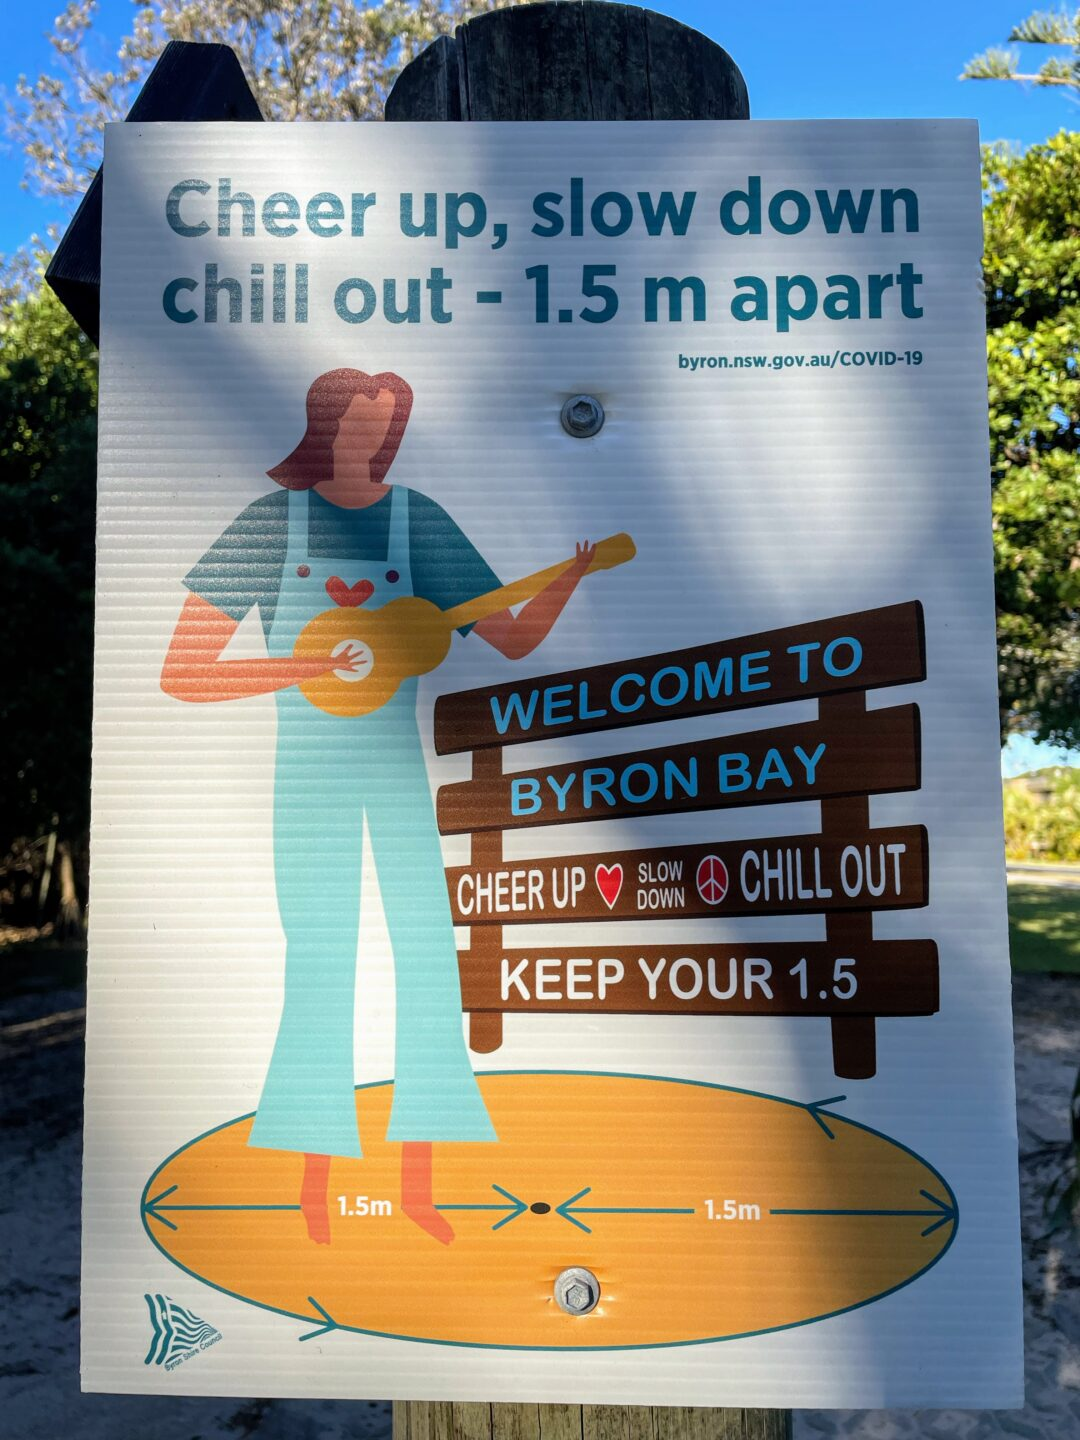 A poster that says 'cheer up, slow down, chill out - 1.5 m apart'